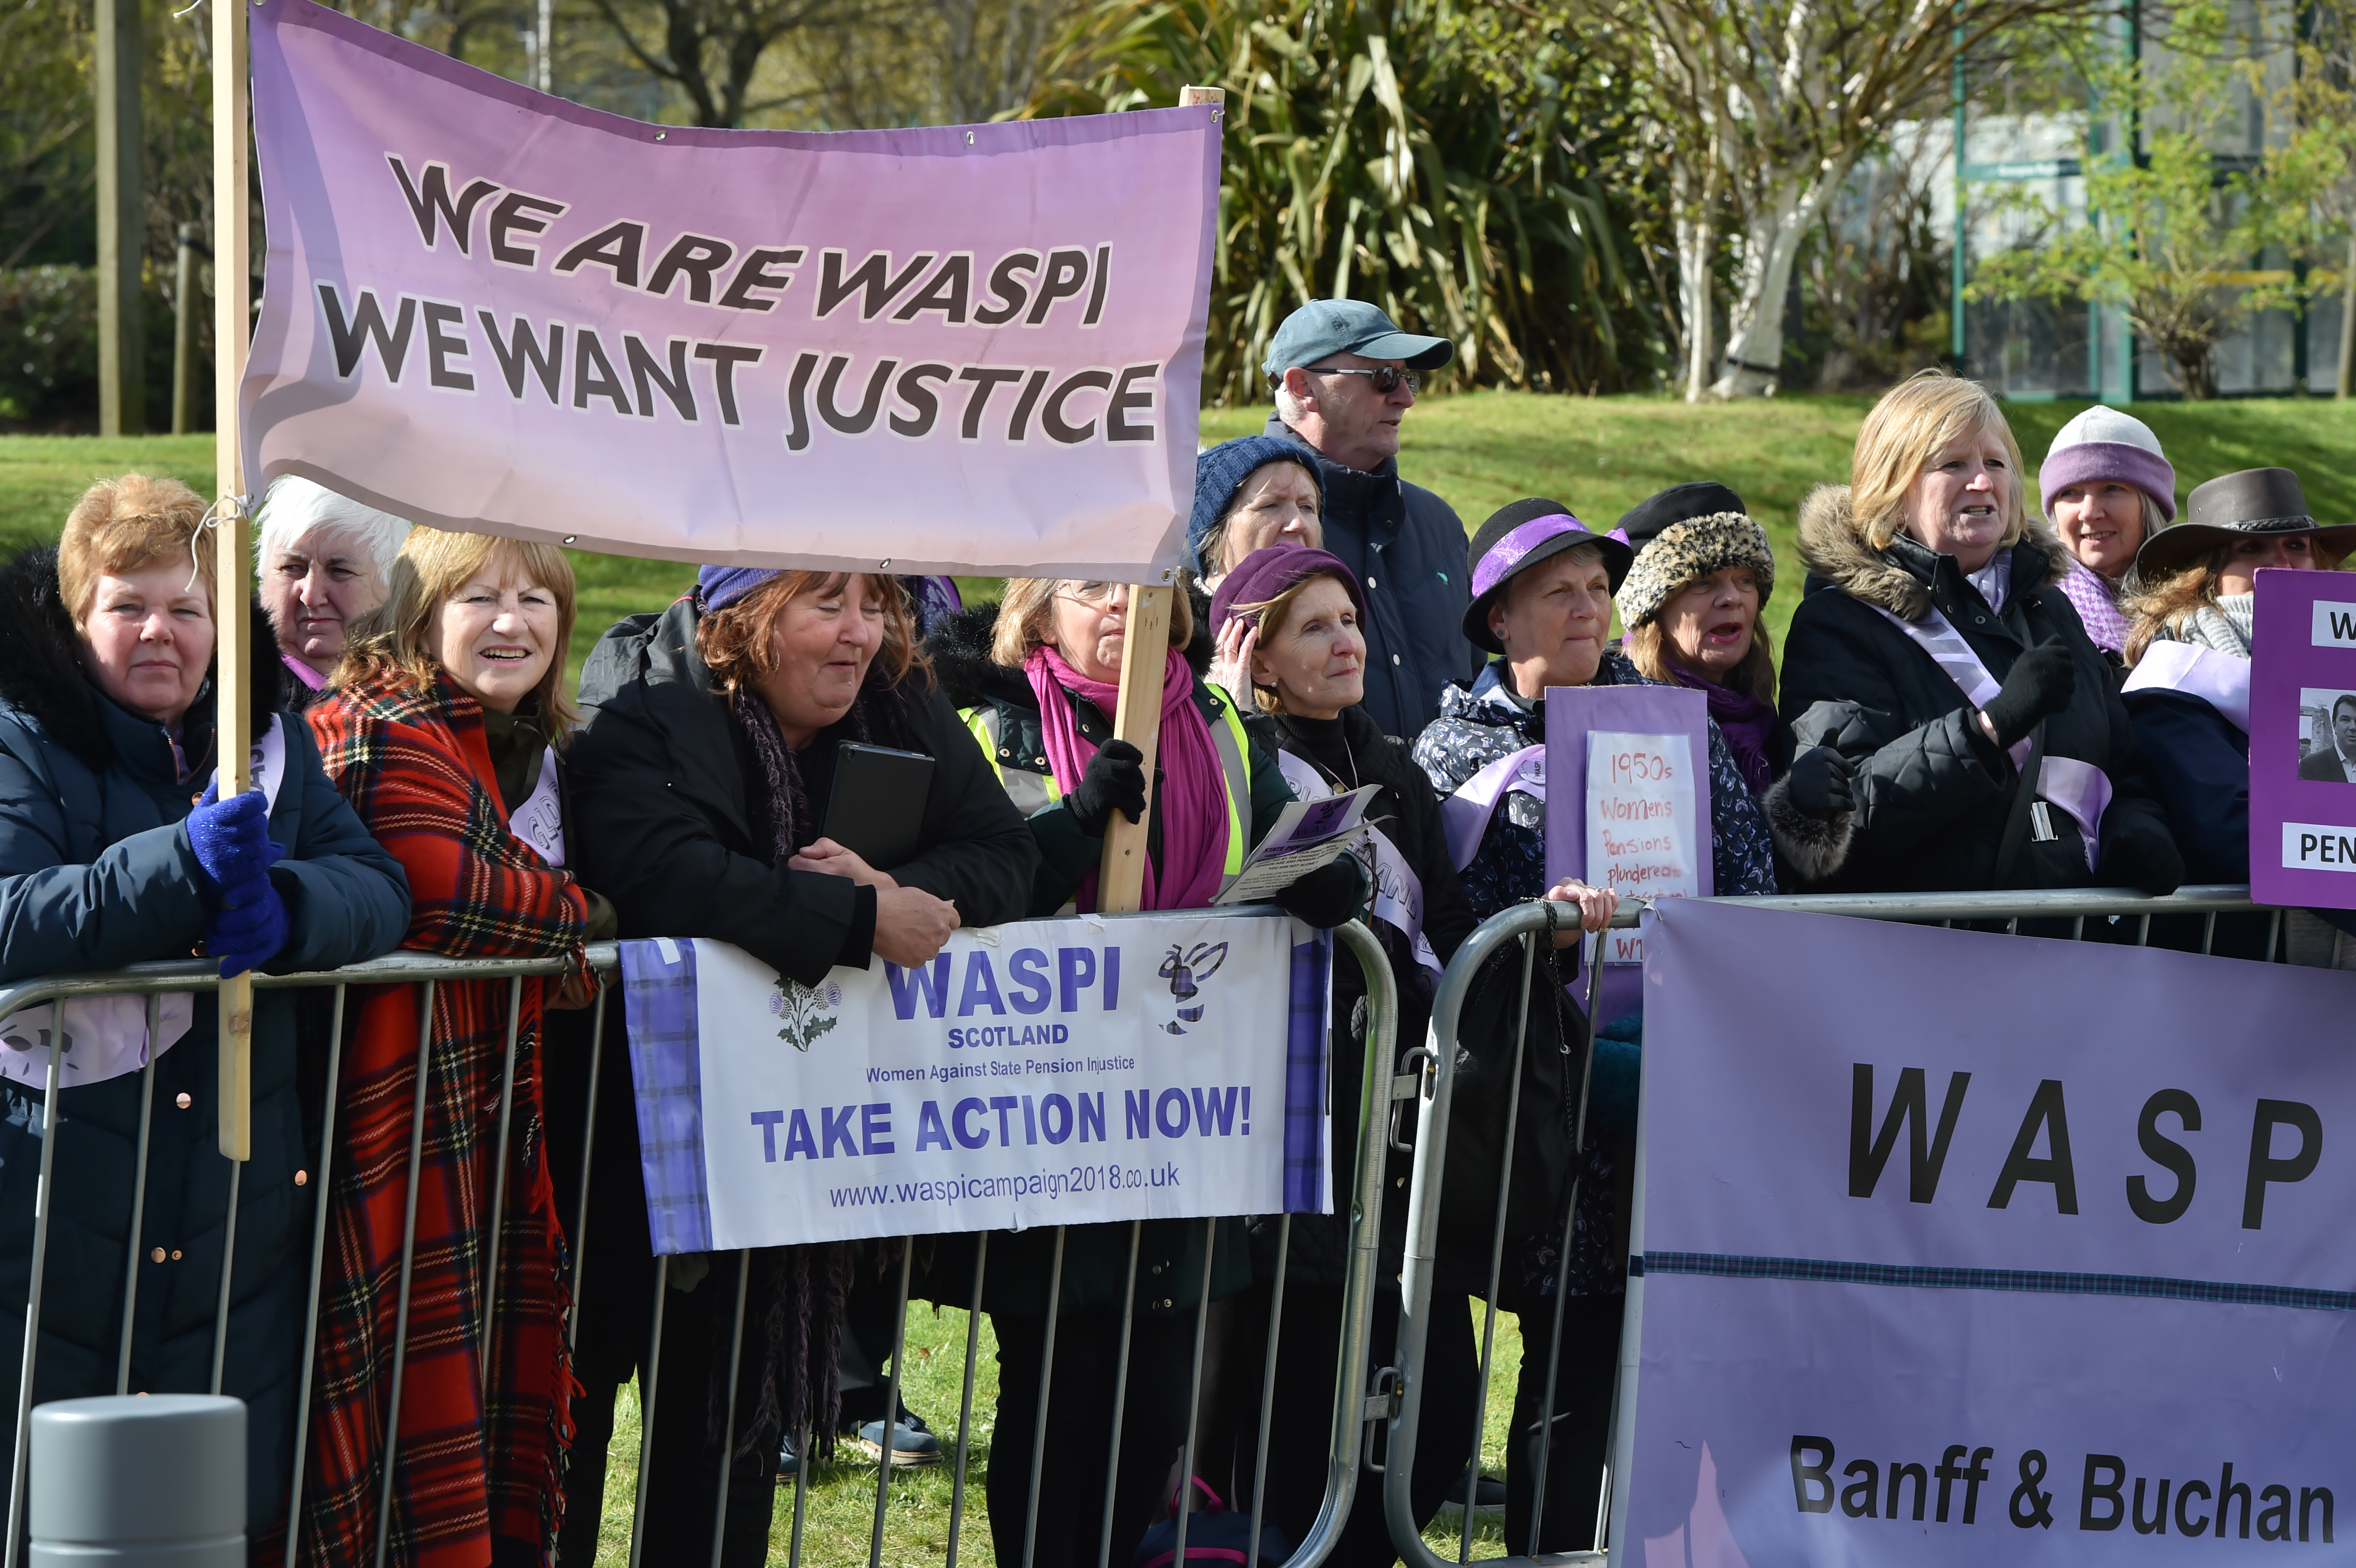 WASPI campaigners protested the conference